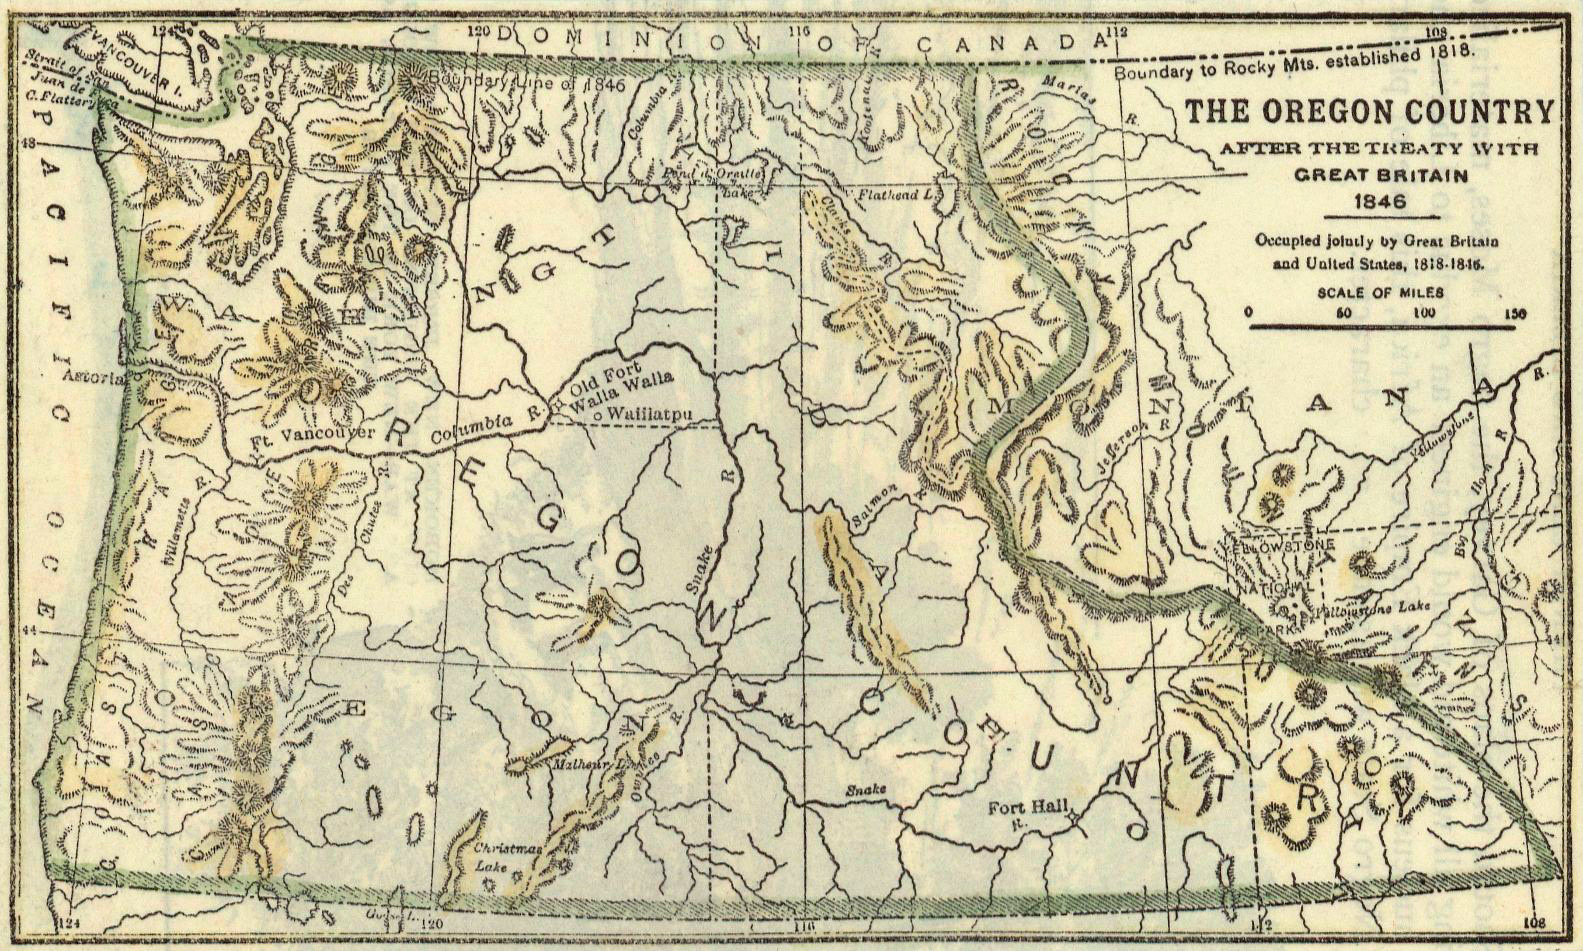 1846 map of the Oregon Country after the treaty with Great Britain.